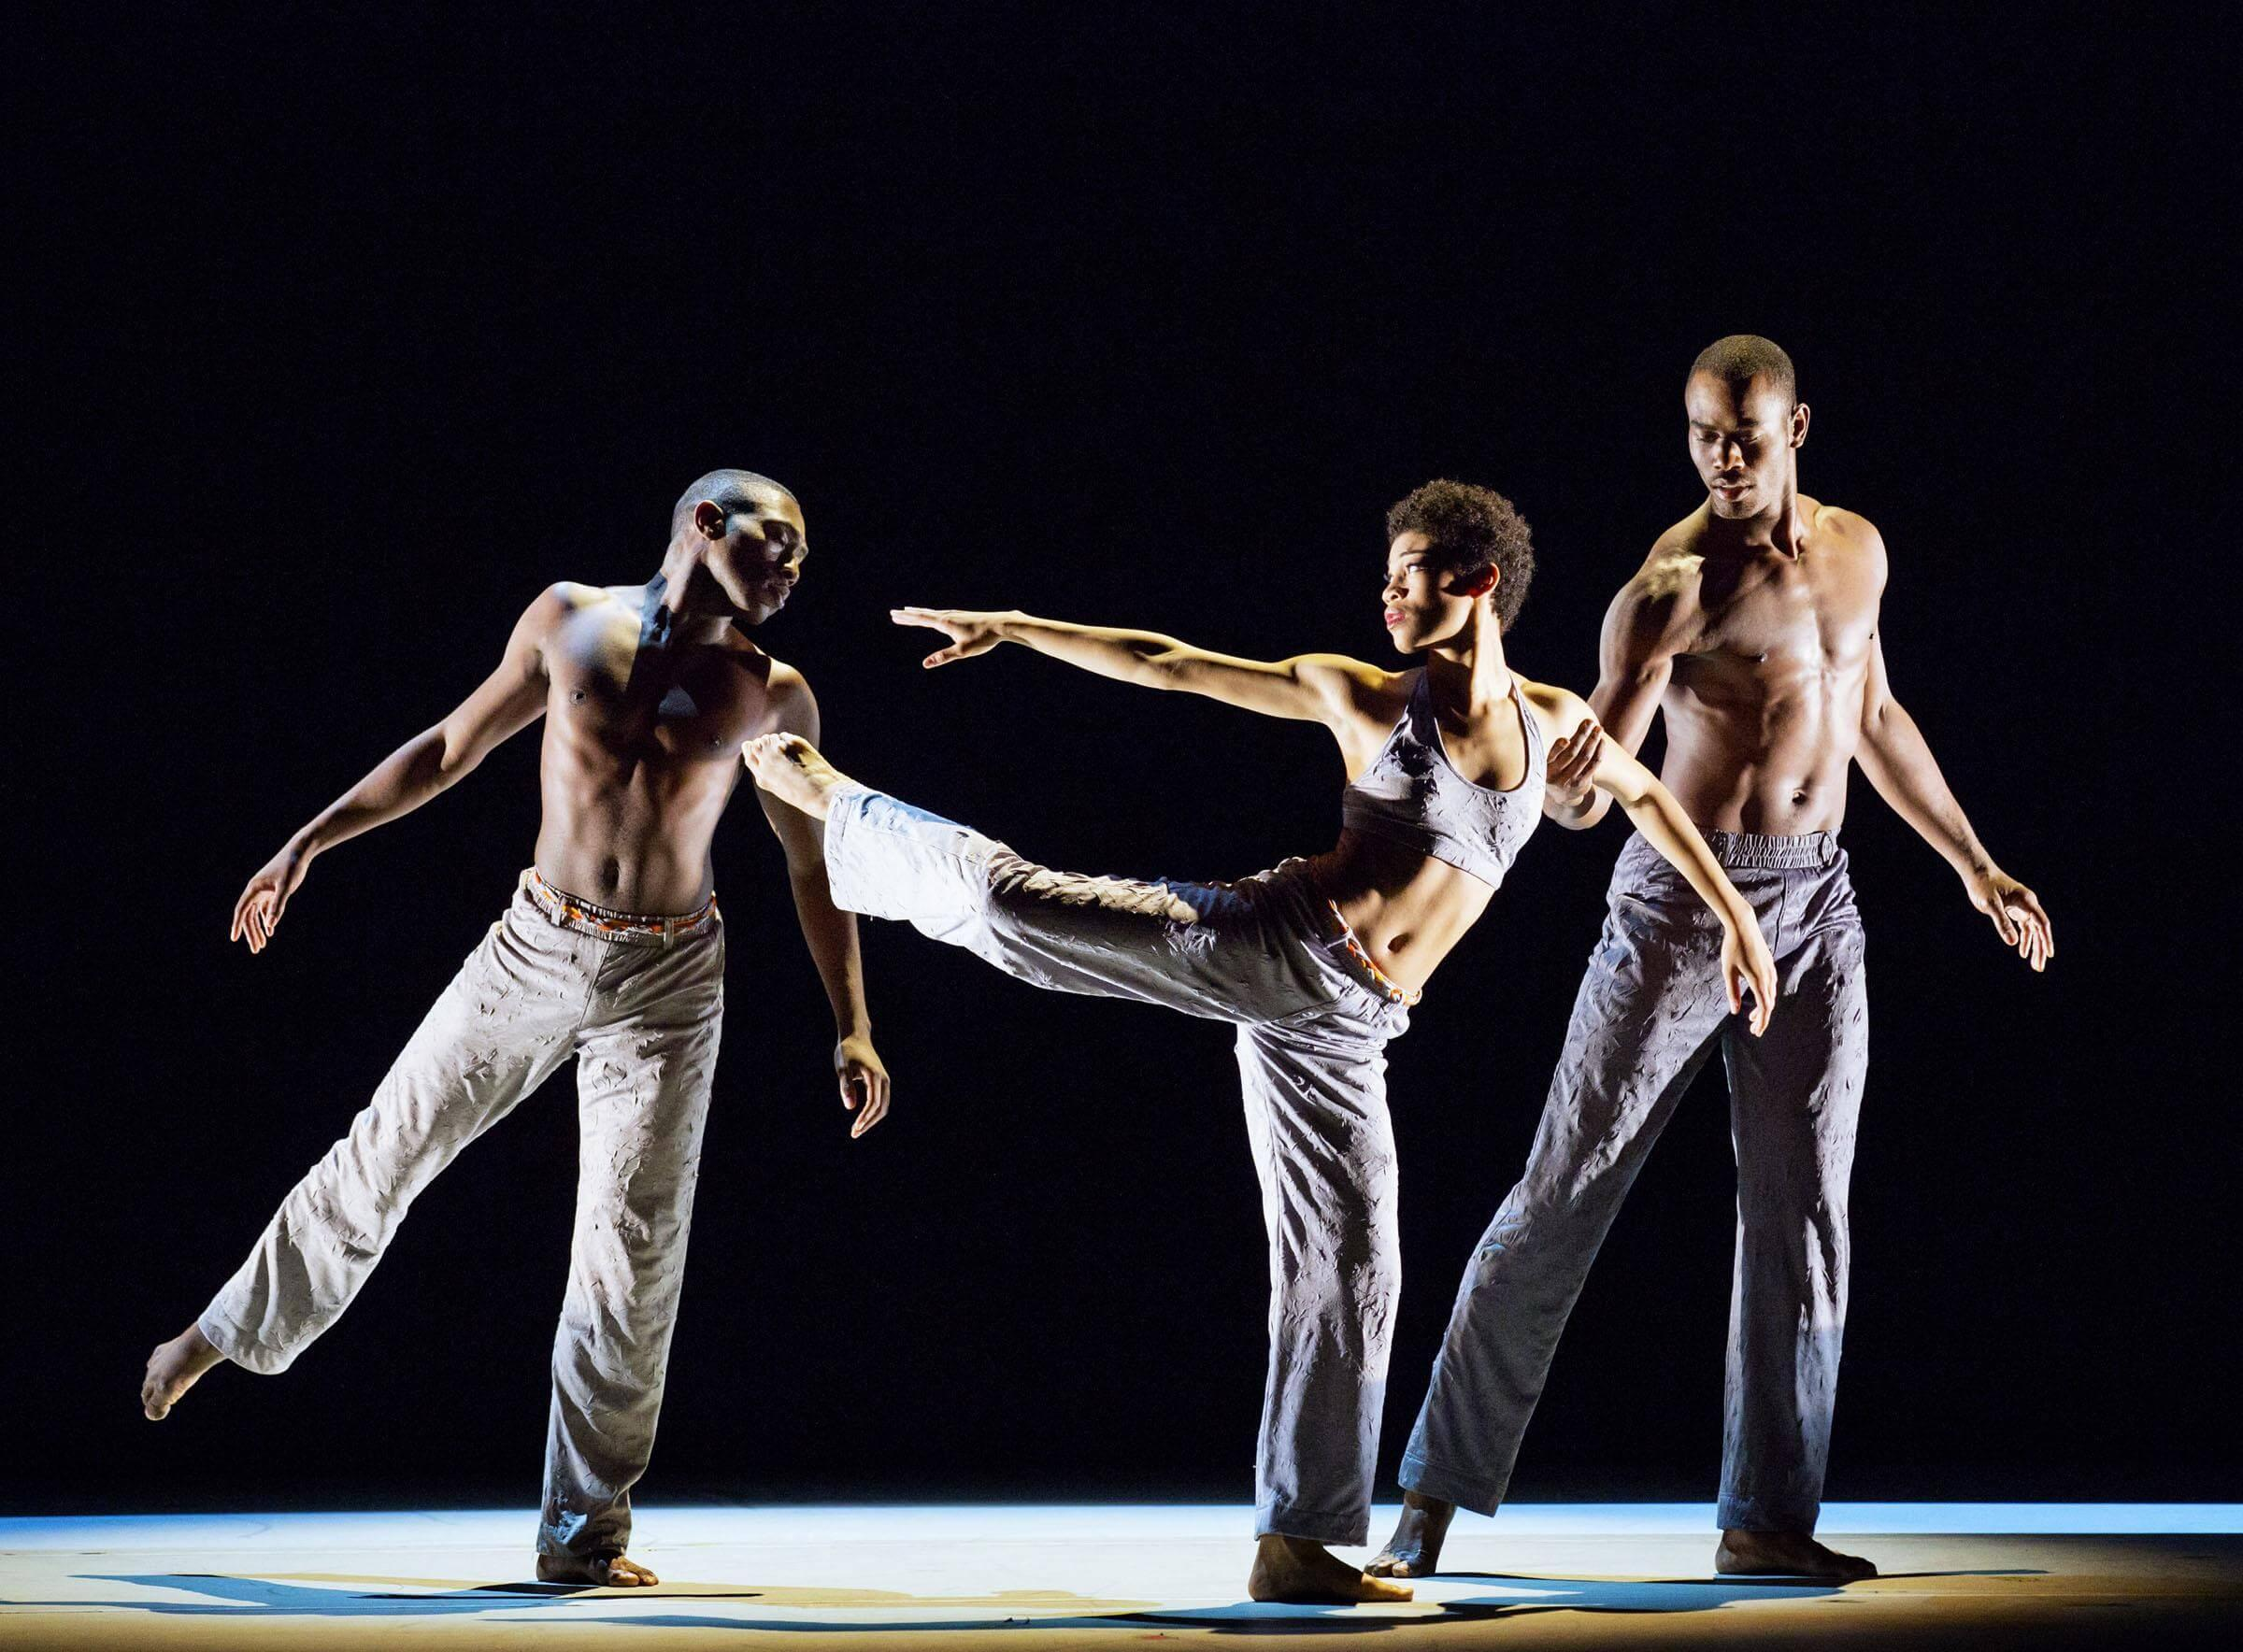 dance piece essay Contemporary dance piece essay (struggle) year 2 review your technical performance for unit 38: dance performance (part 1) during the past 6 weeks of this unit i have been involved in creating a contemporary dance piece based on the topic of 'struggle.